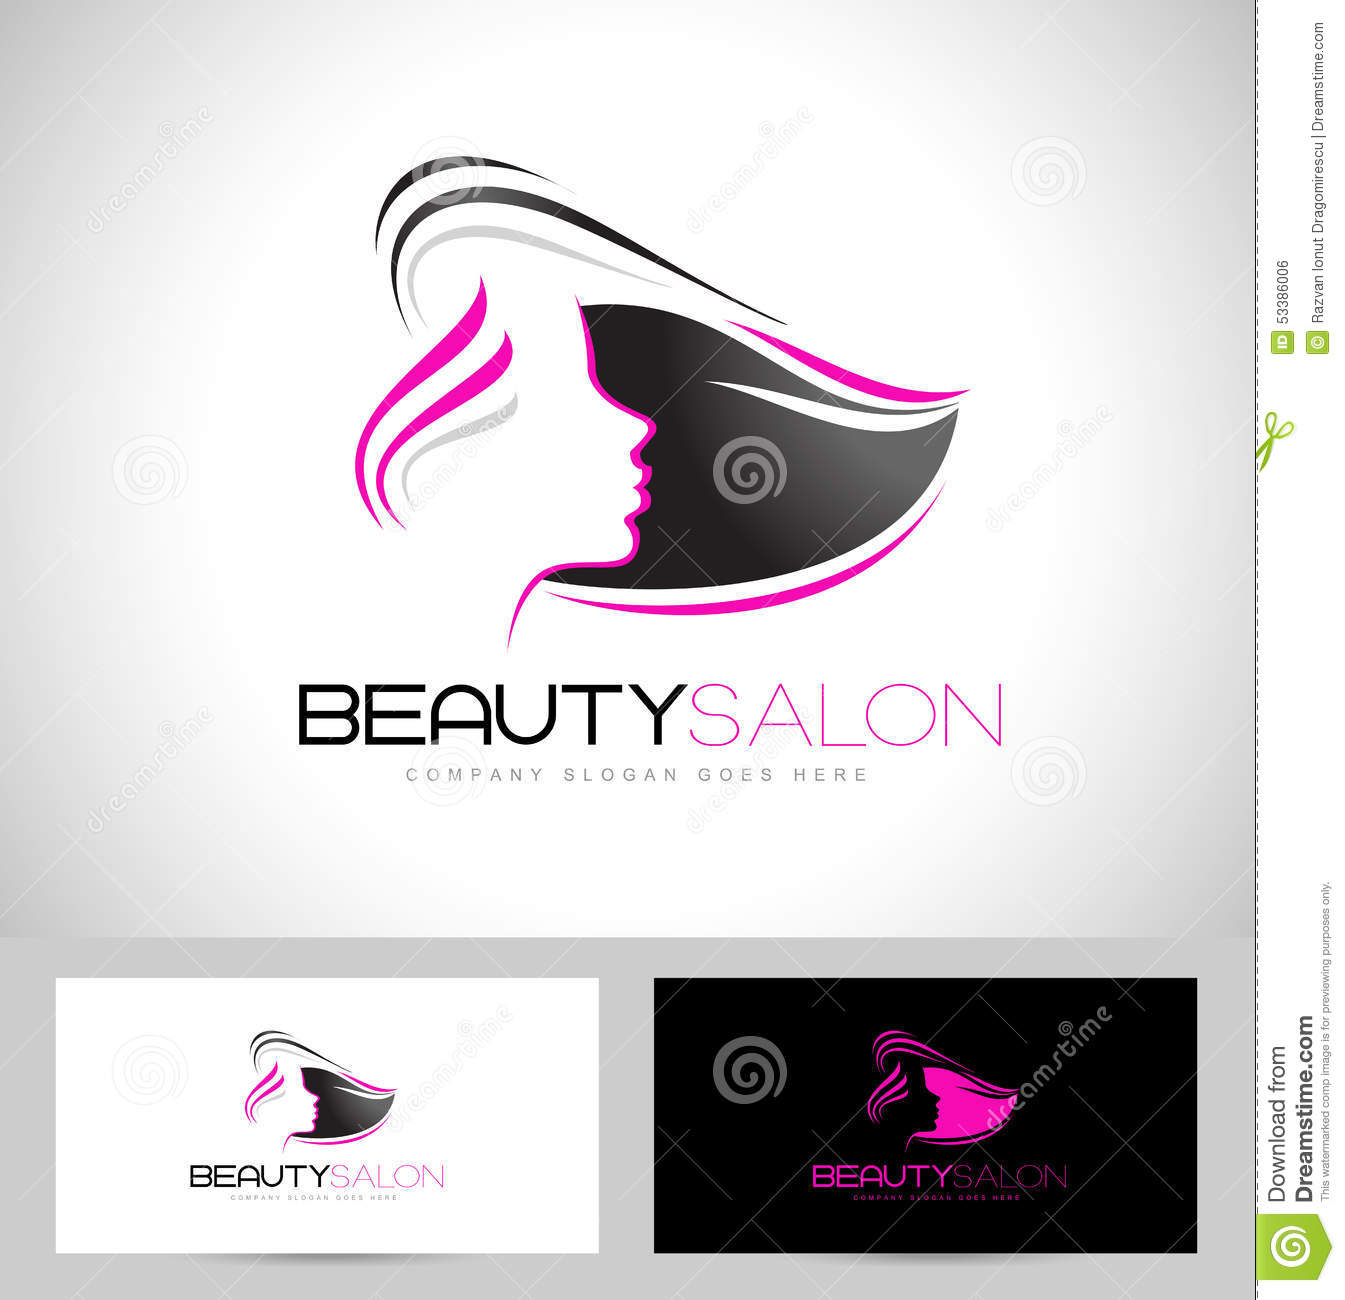 Salon stock illustrations 54855 salon stock illustrations hair salon logo design creative abstract woman face and hair and business card template wajeb